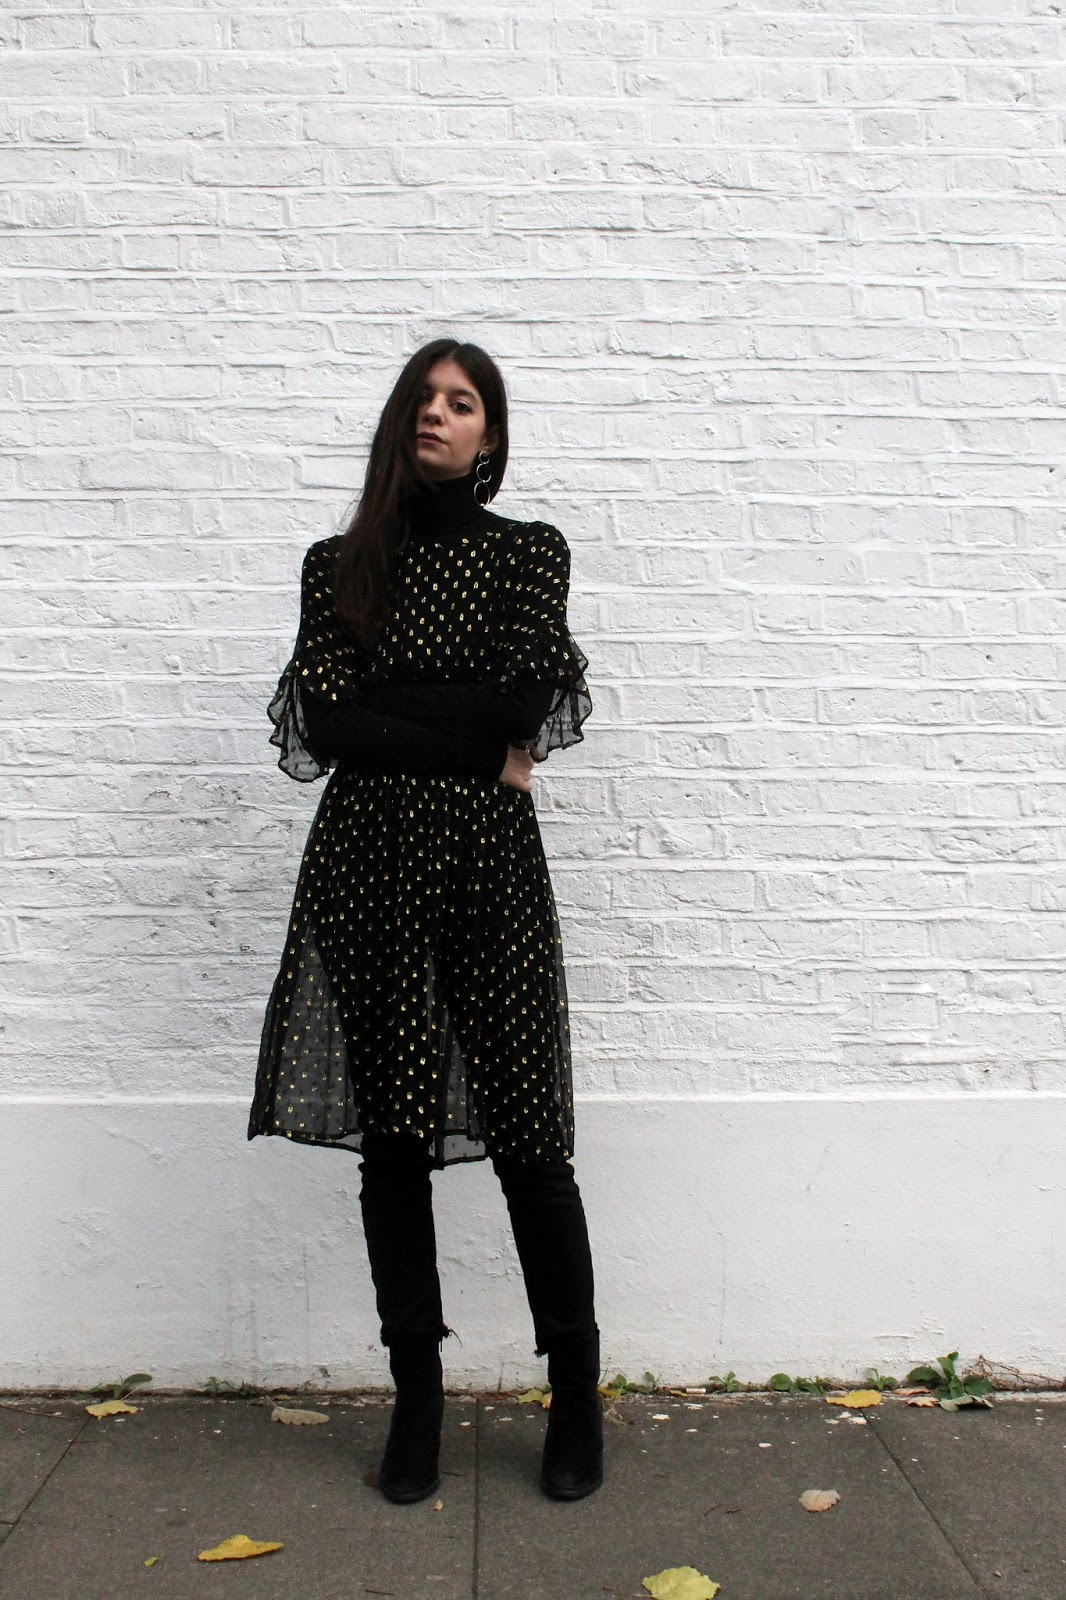 sheer dress, polka dot, gold and black, fbloggers, fashion blogger style, miss selfridge dress, uniqlo turtleneck, microinfluencer